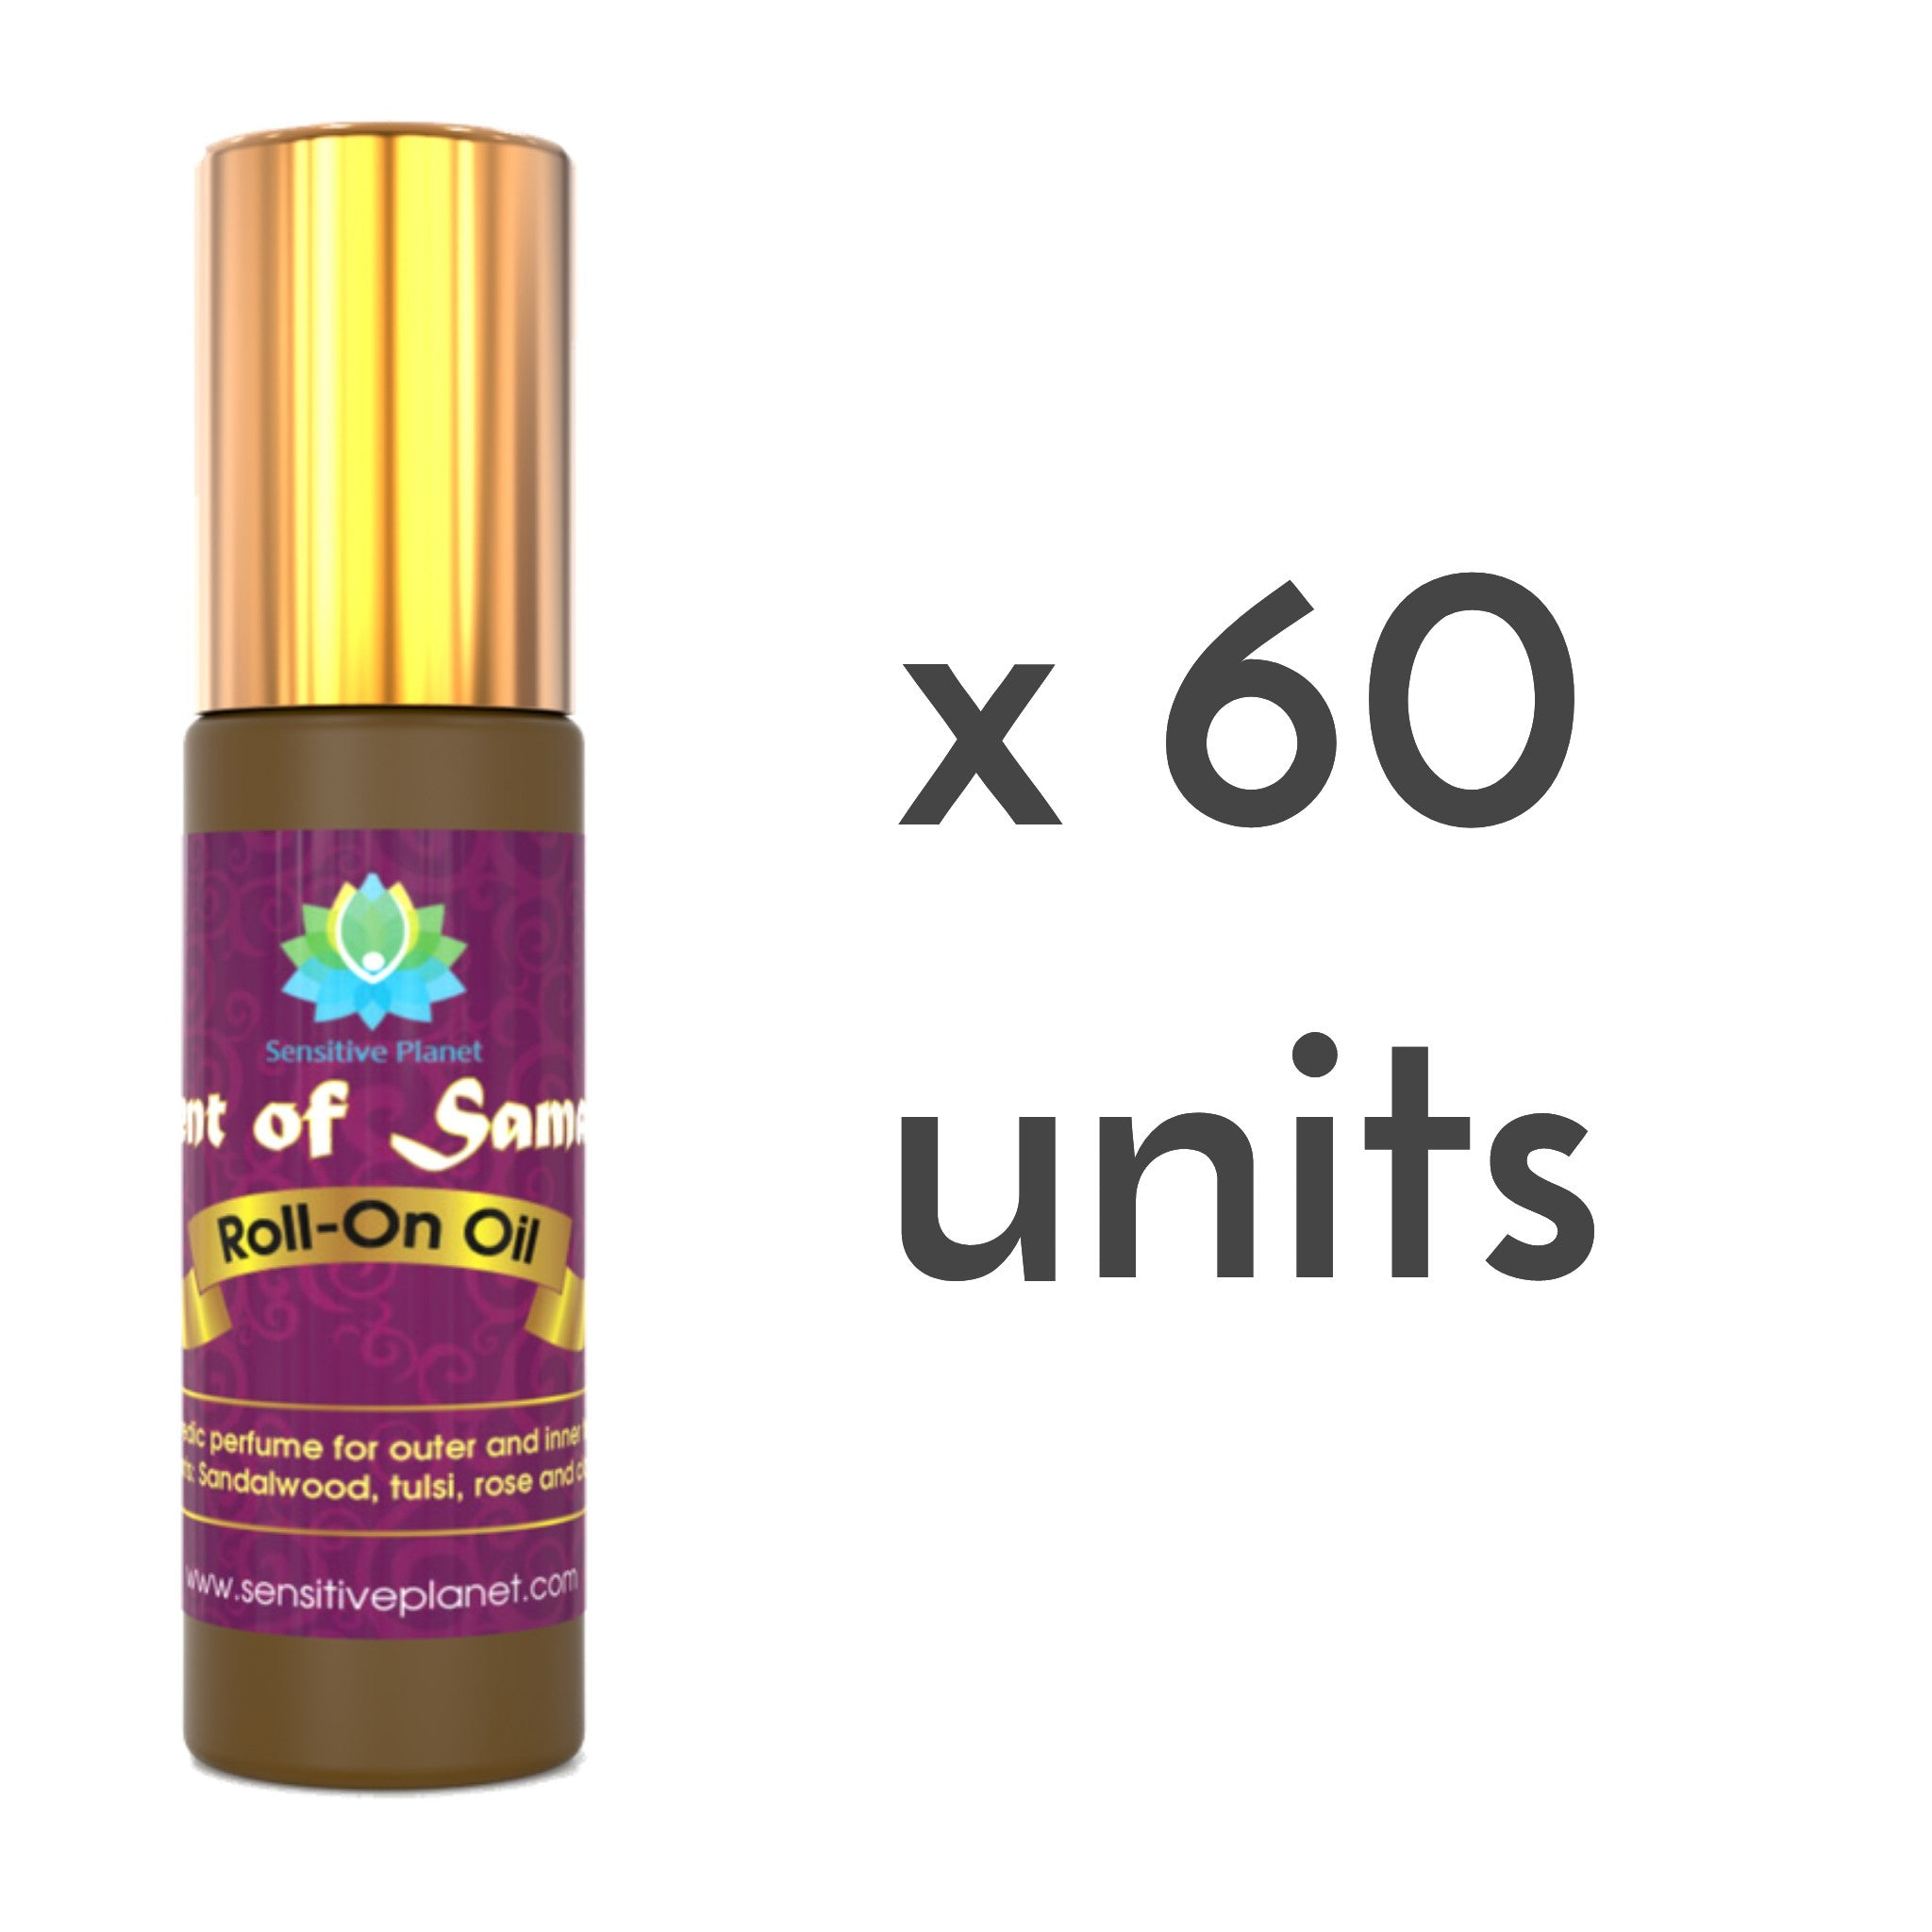 scent of samadhi roll-on oil 60 units